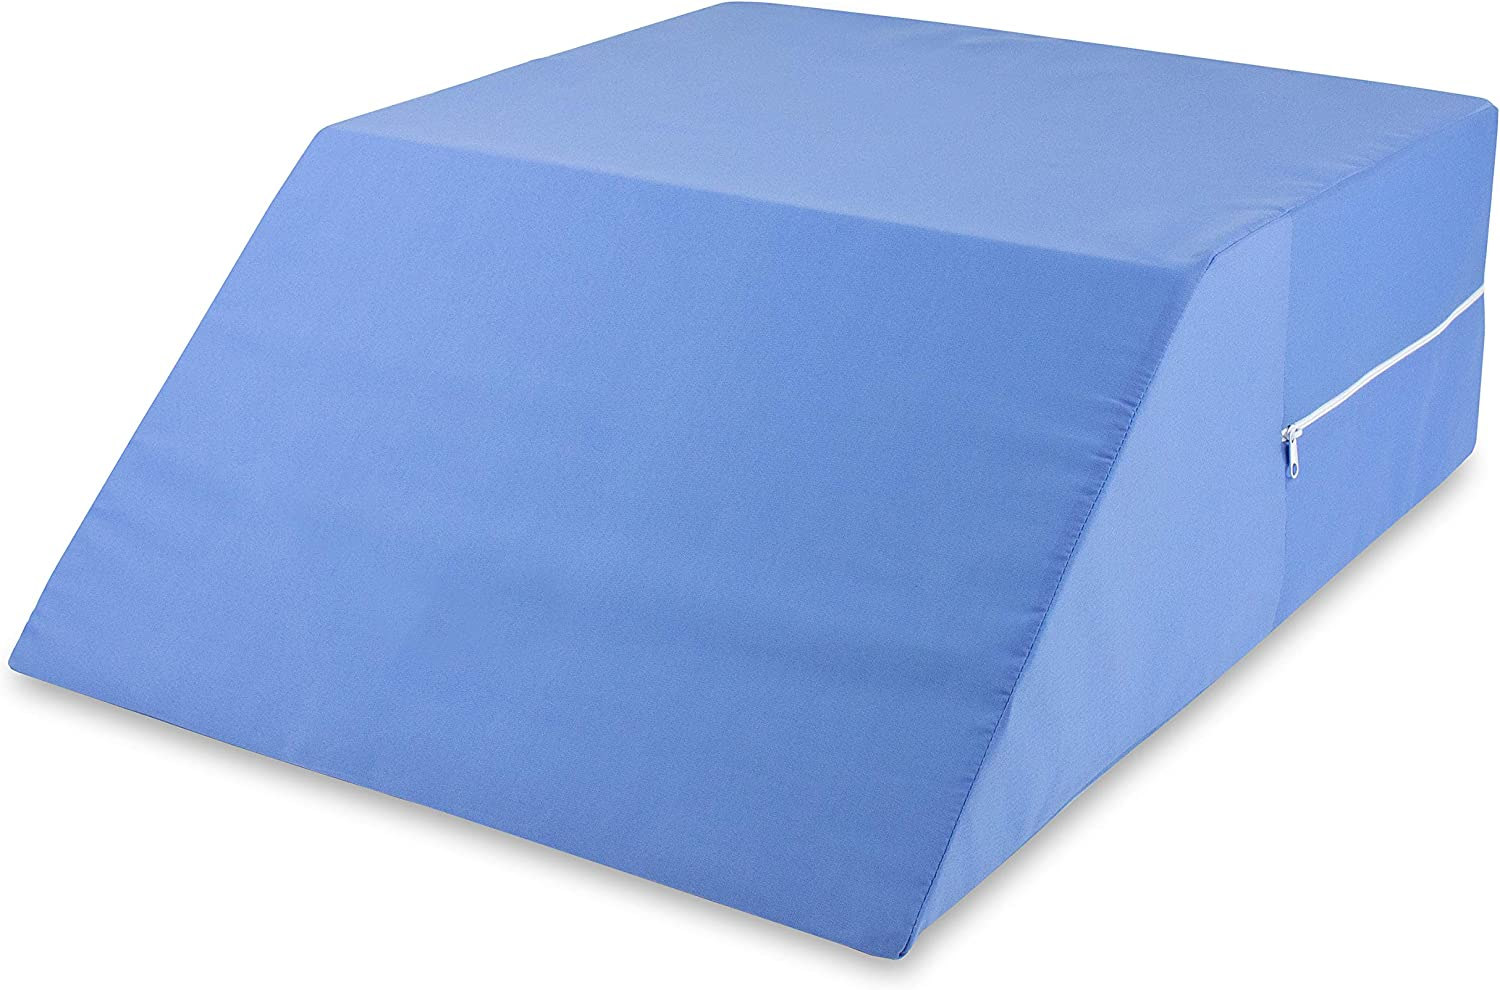 DMI Ortho Bed Wedge Elevated Leg Pillow, Supportive Foam Wedge Pillow for Elevating Legs, Improved Circulation, Reducing Back Pain and More, Blue: Health & Personal Care